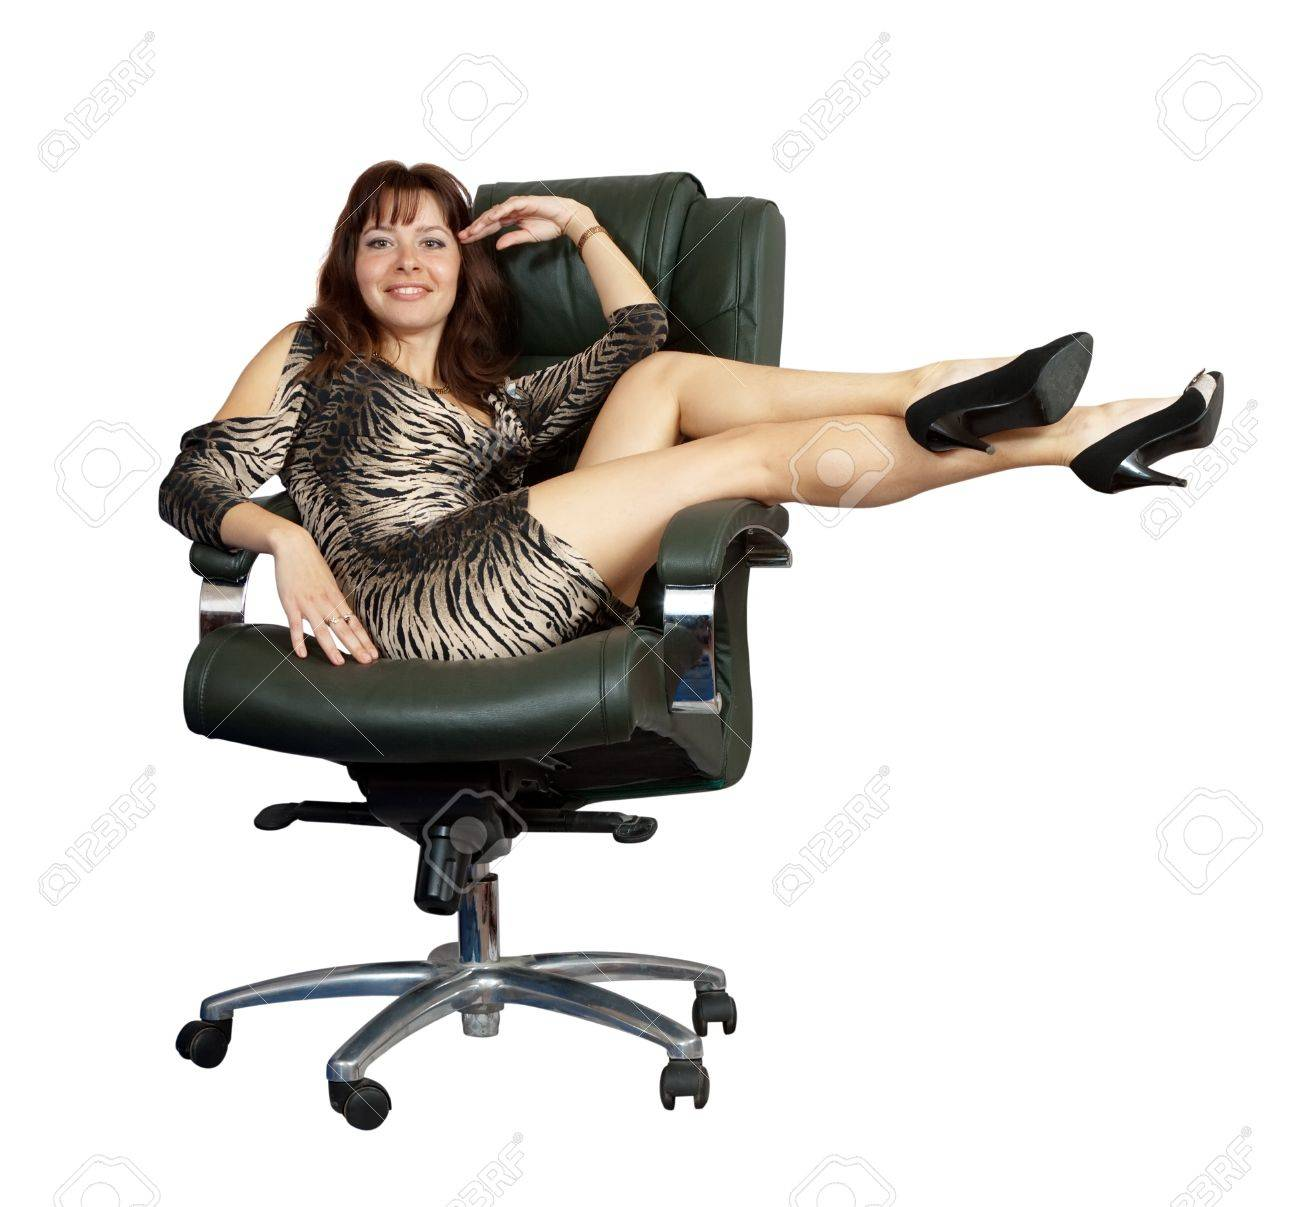 Sexy Woman Sitting On Luxury Office Armchair, Isolated Over White  Background Stock Photo   10885608